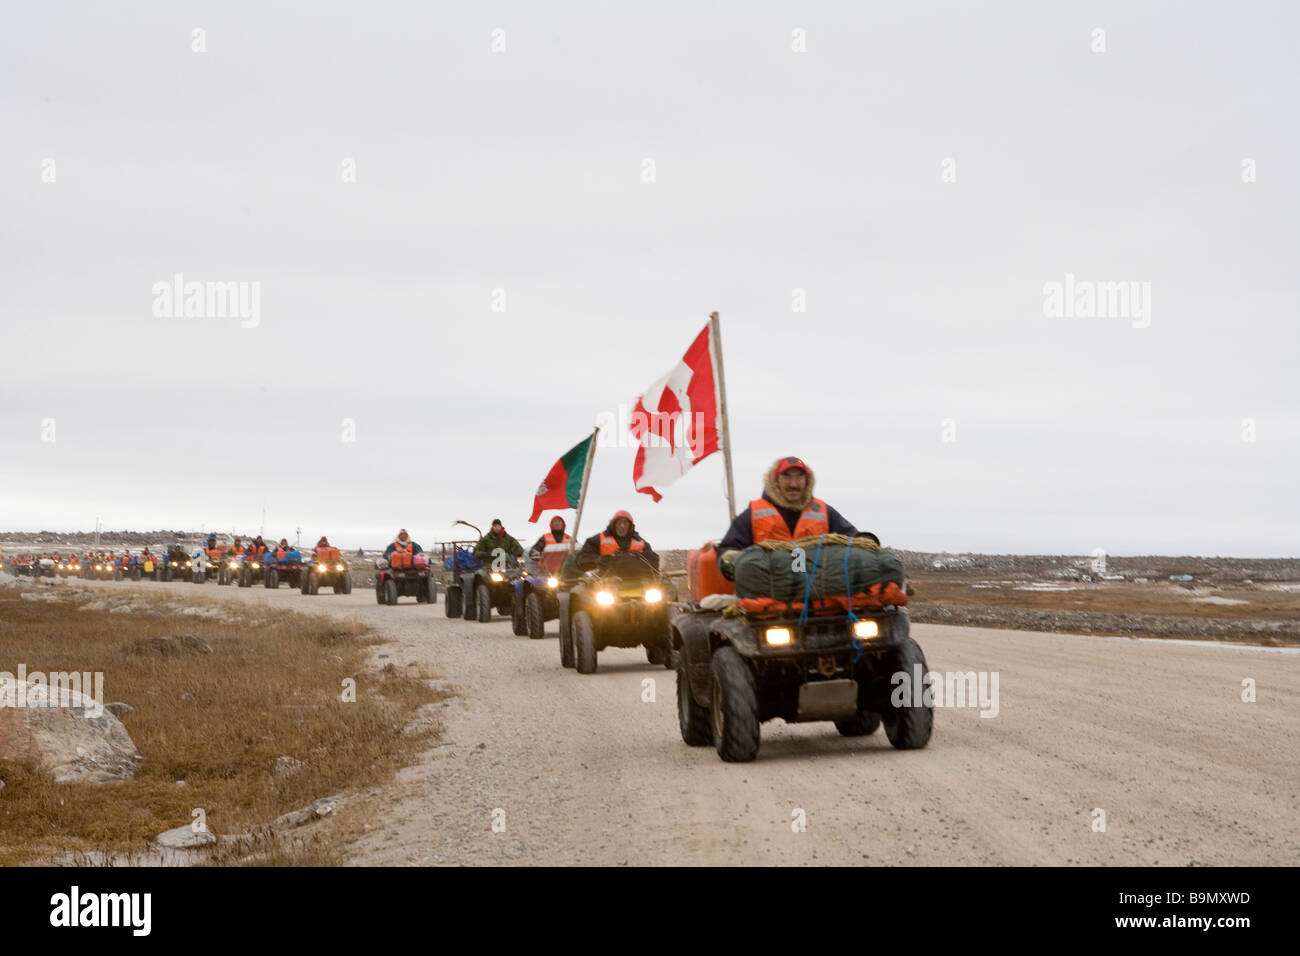 Dirt track with row of Canadian Rangers and canadian flag on quad bikes, Canadian Arctic, Canada - Stock Image